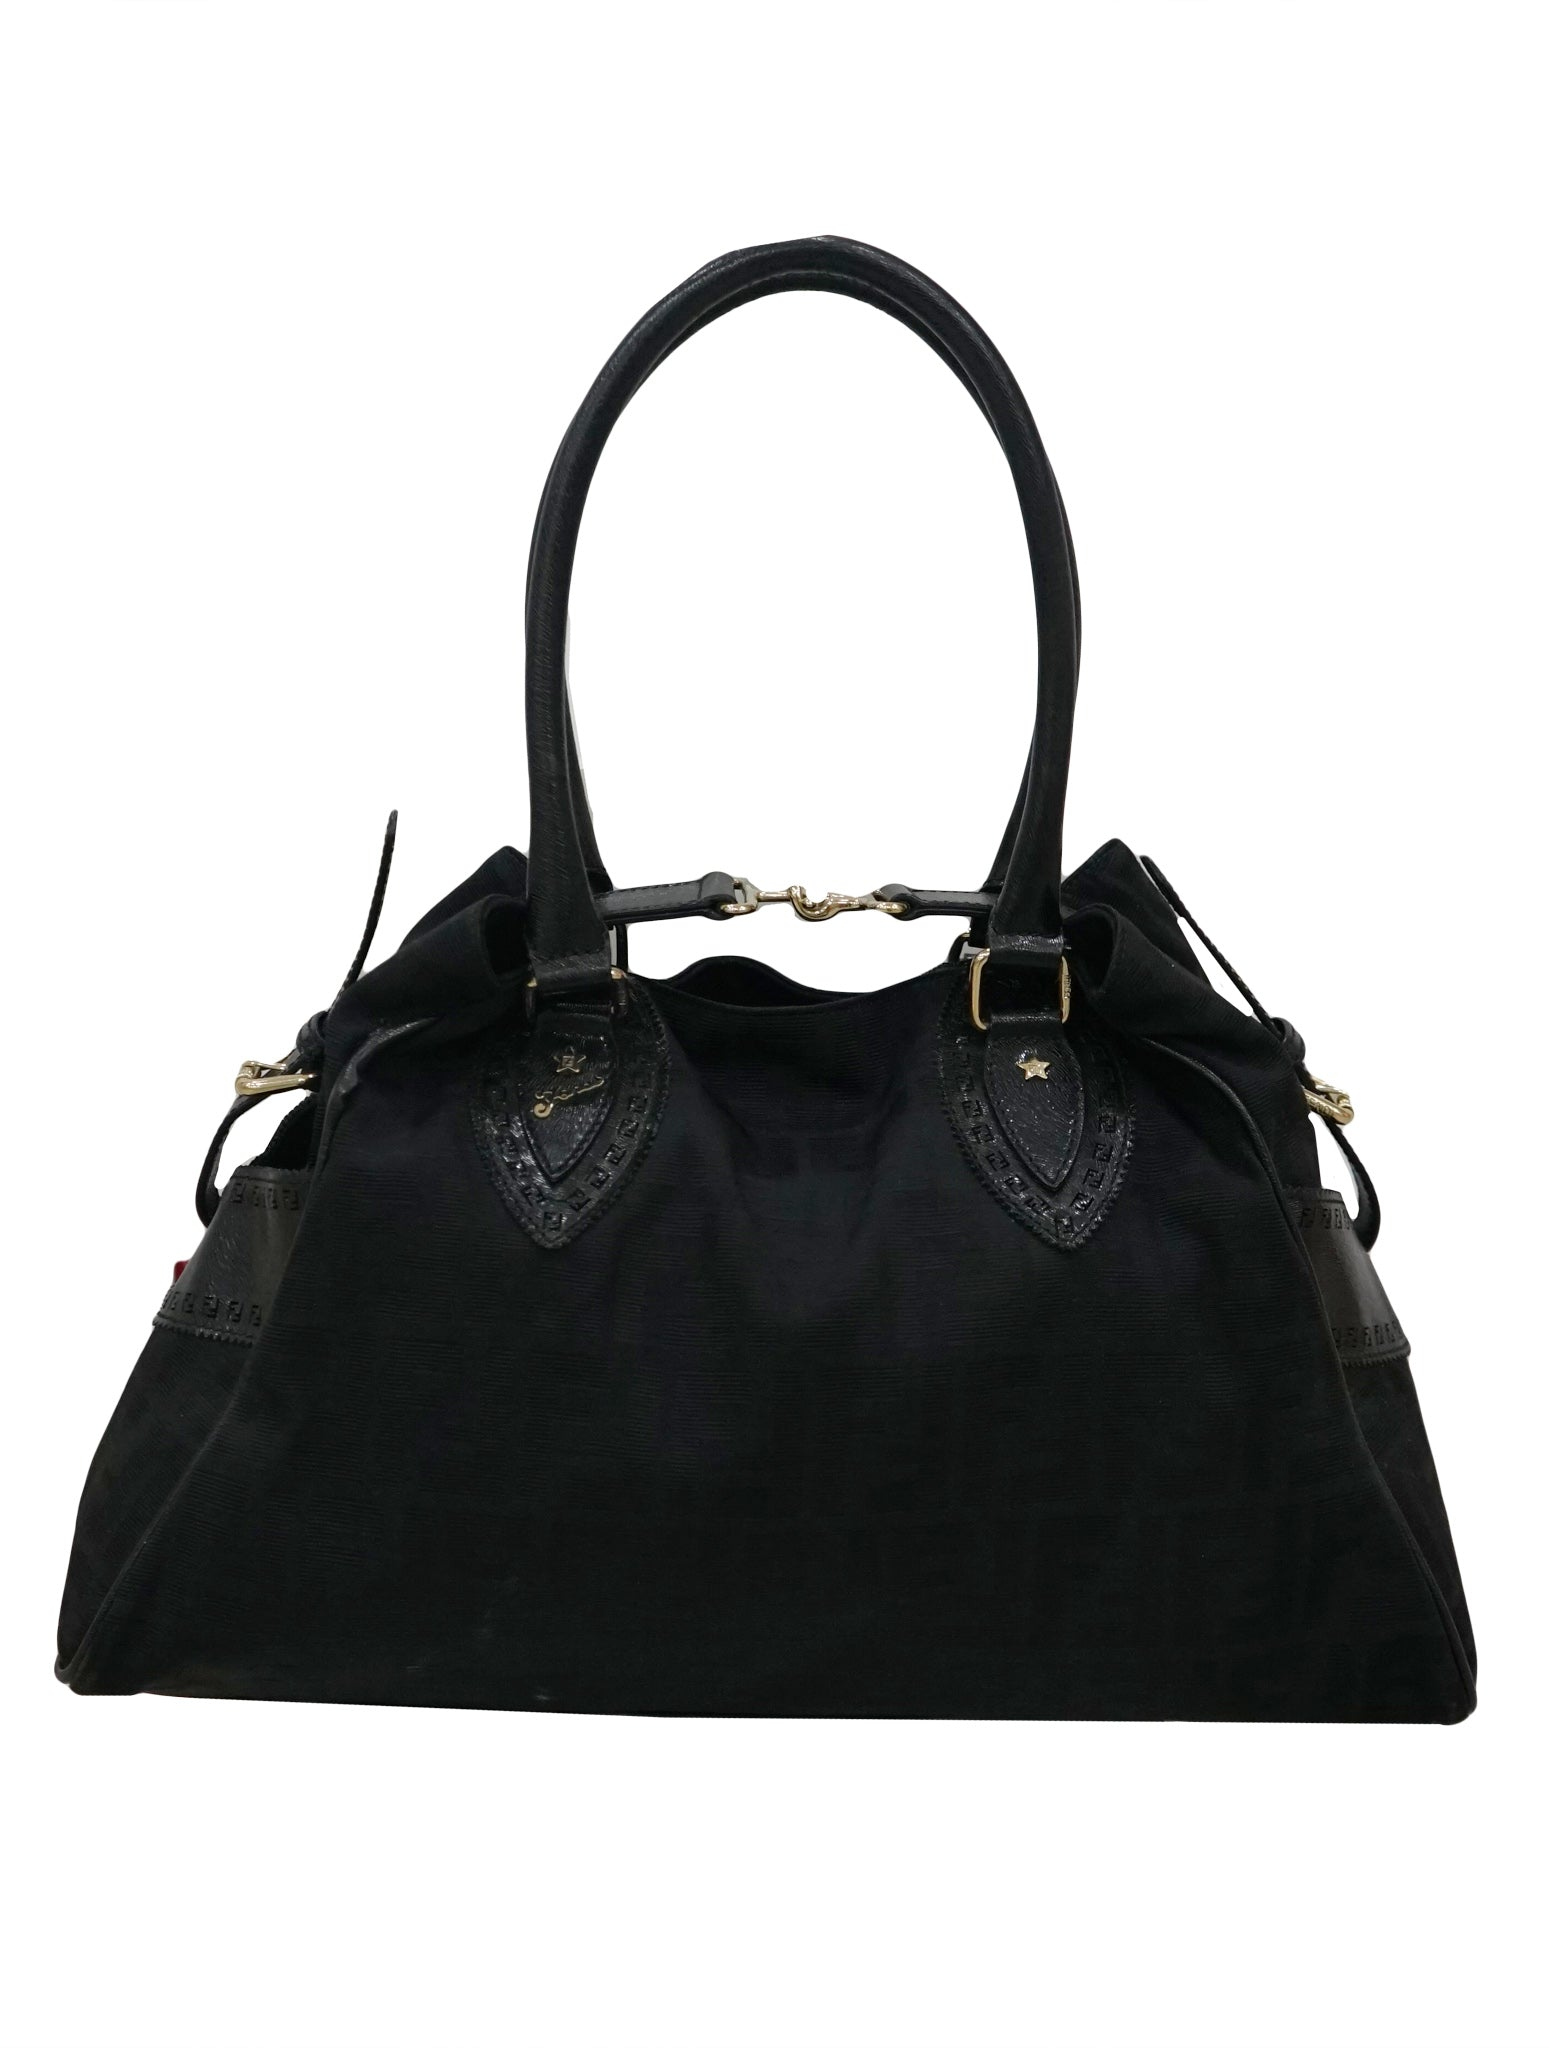 d65640d842d1 FENDI ZUCCA FABRIC AND PATENT LEATHER DU JOUR TOTE – Kidsstyleforless